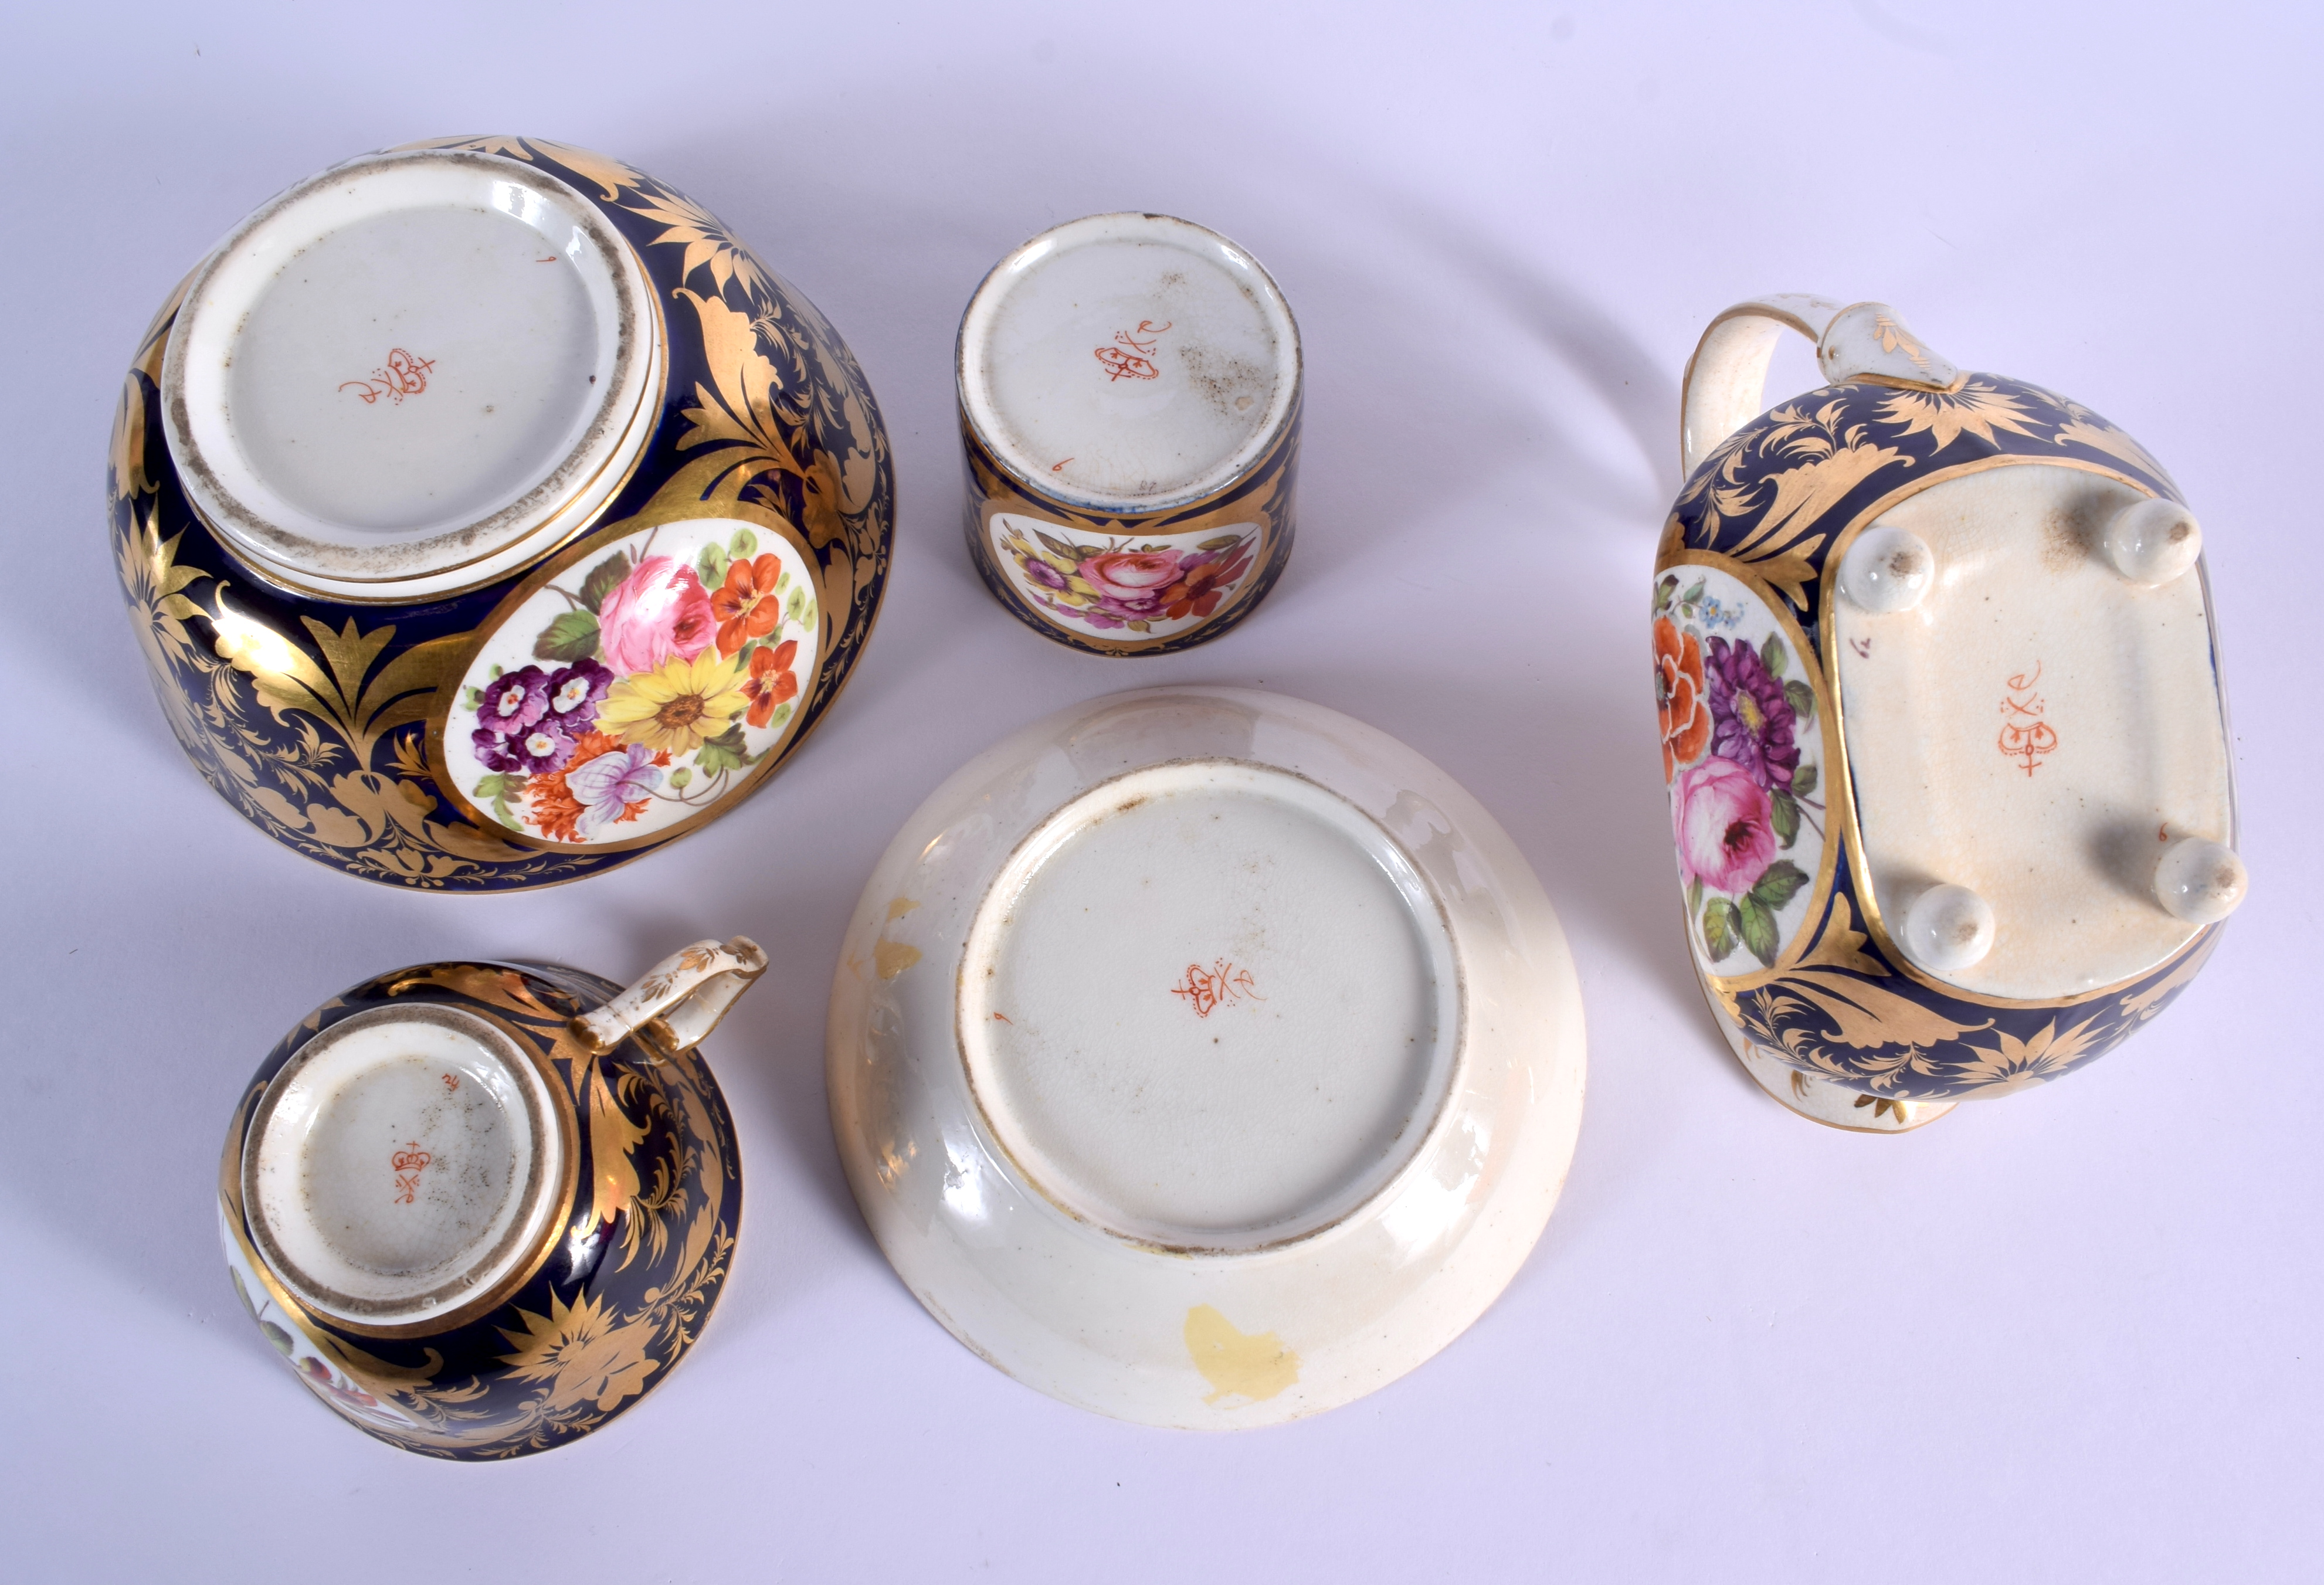 AN EARLY 19TH DERBY PORCELAIN TEAWARES including a trio, cream jug and slop bowl. Largest 12 cm diam - Image 3 of 3